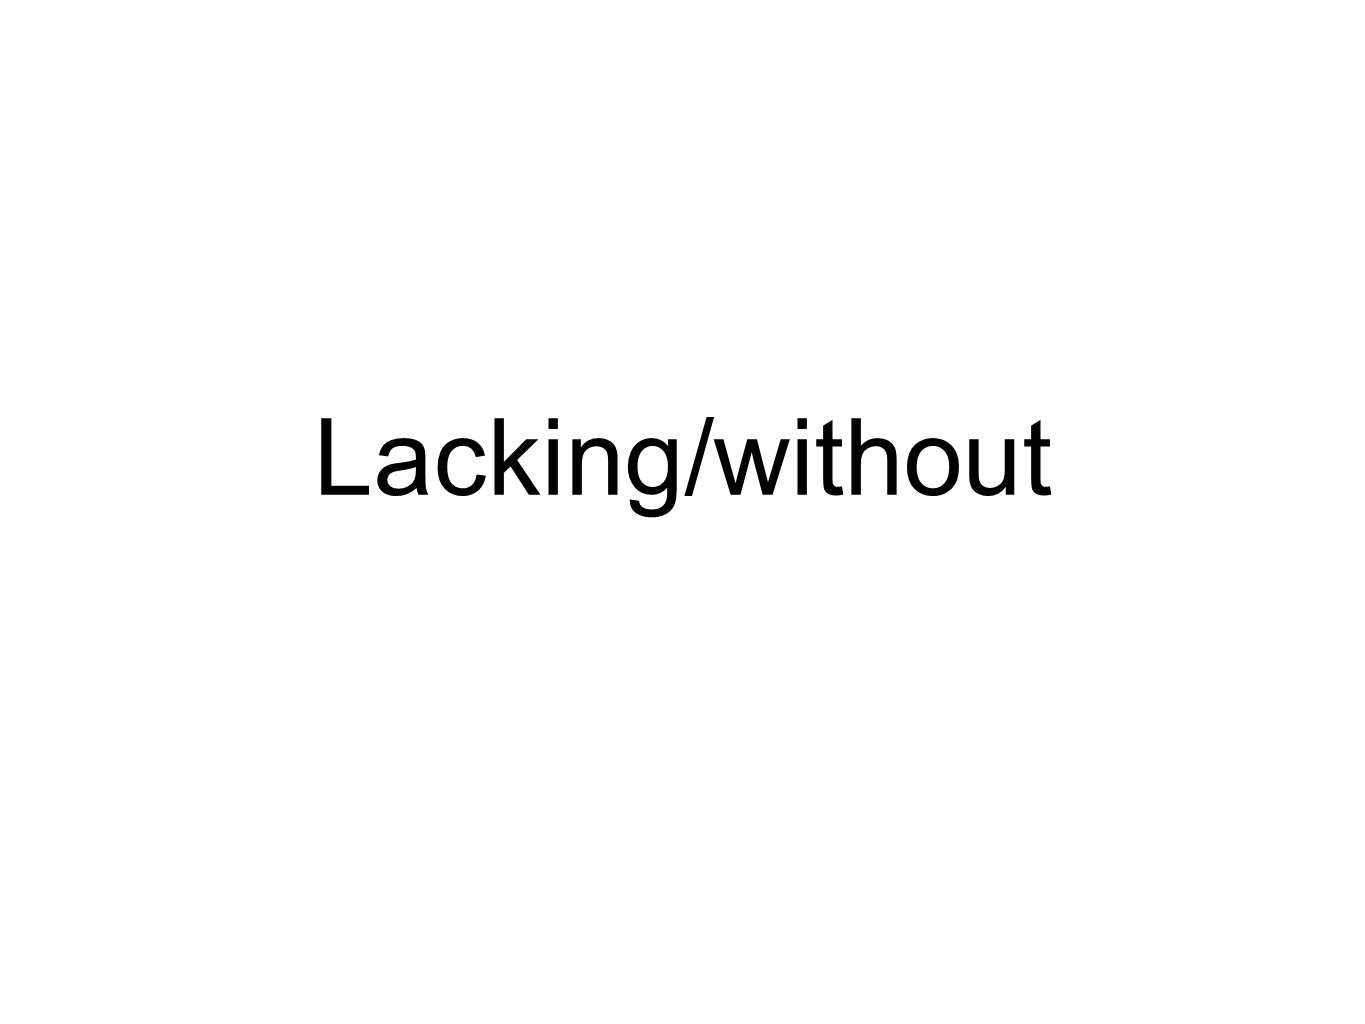 Lacking/without